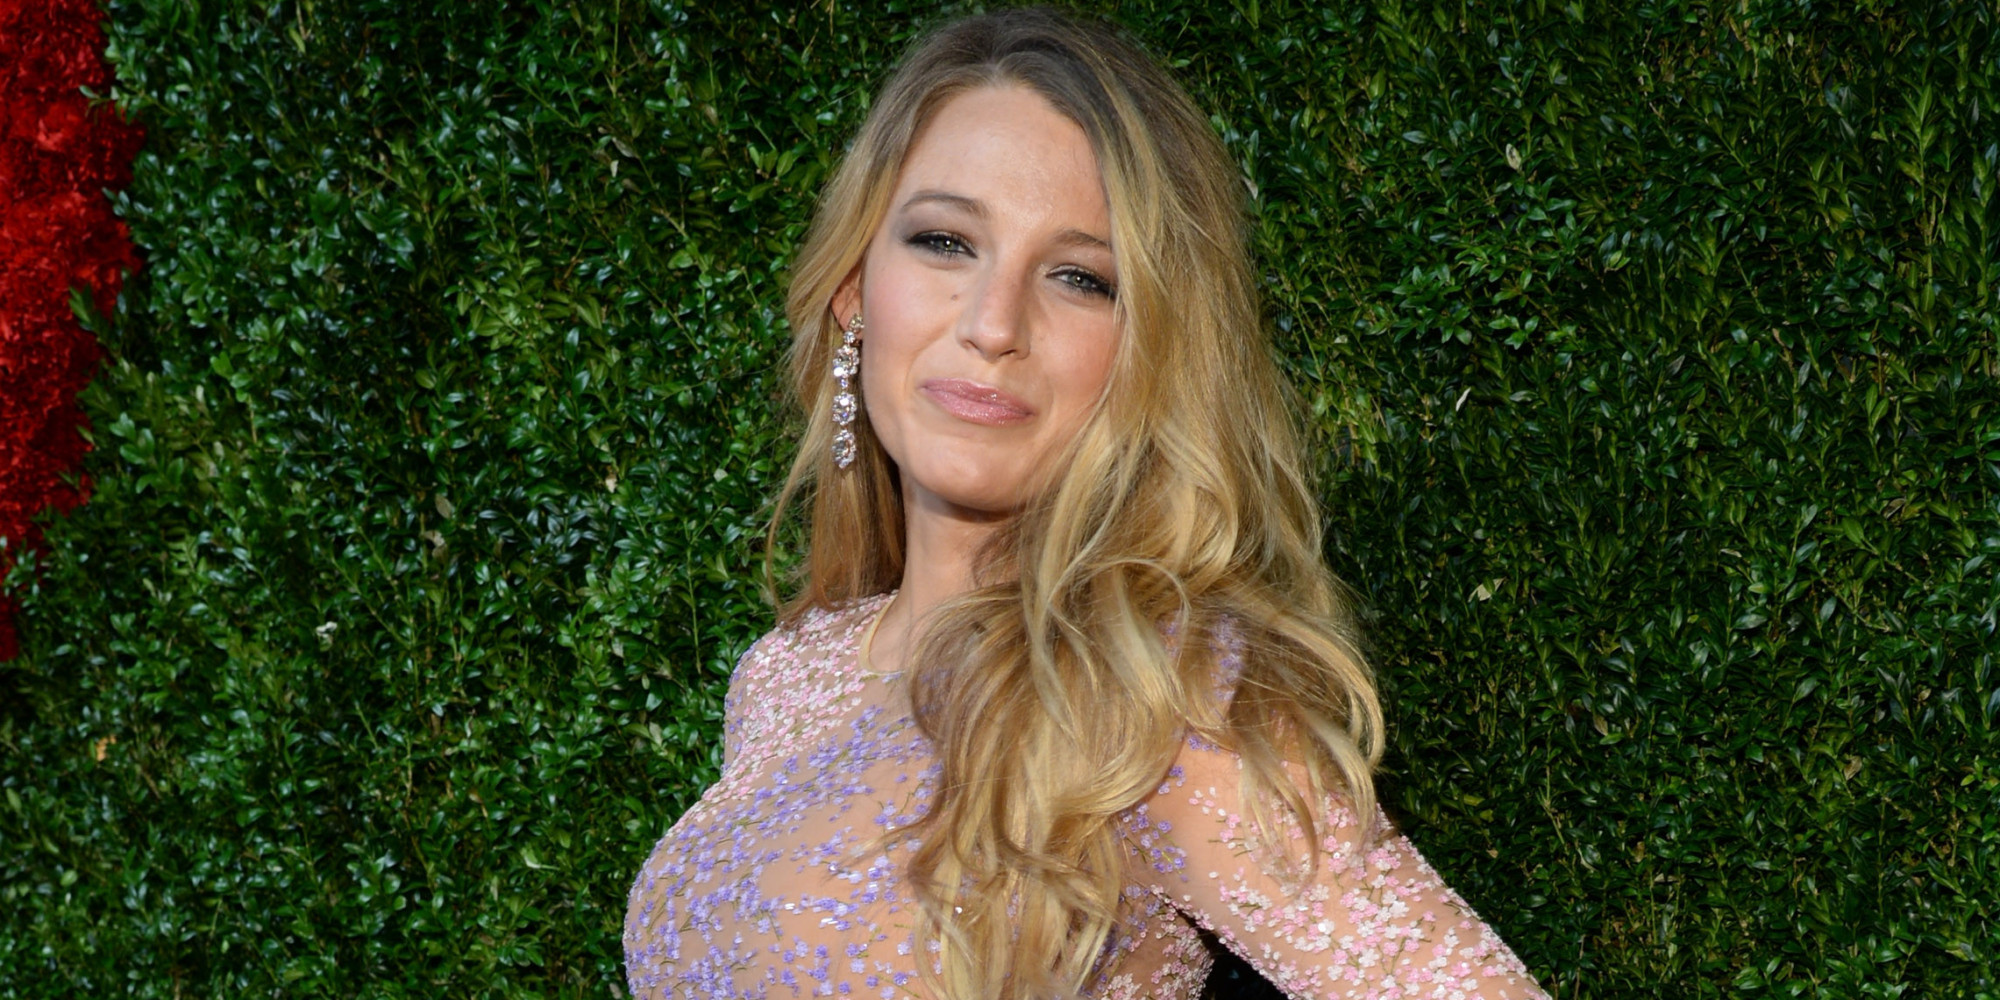 Pregnant Blake Lively Is Positively Glowing On The Red ... Blake Lively Facebook